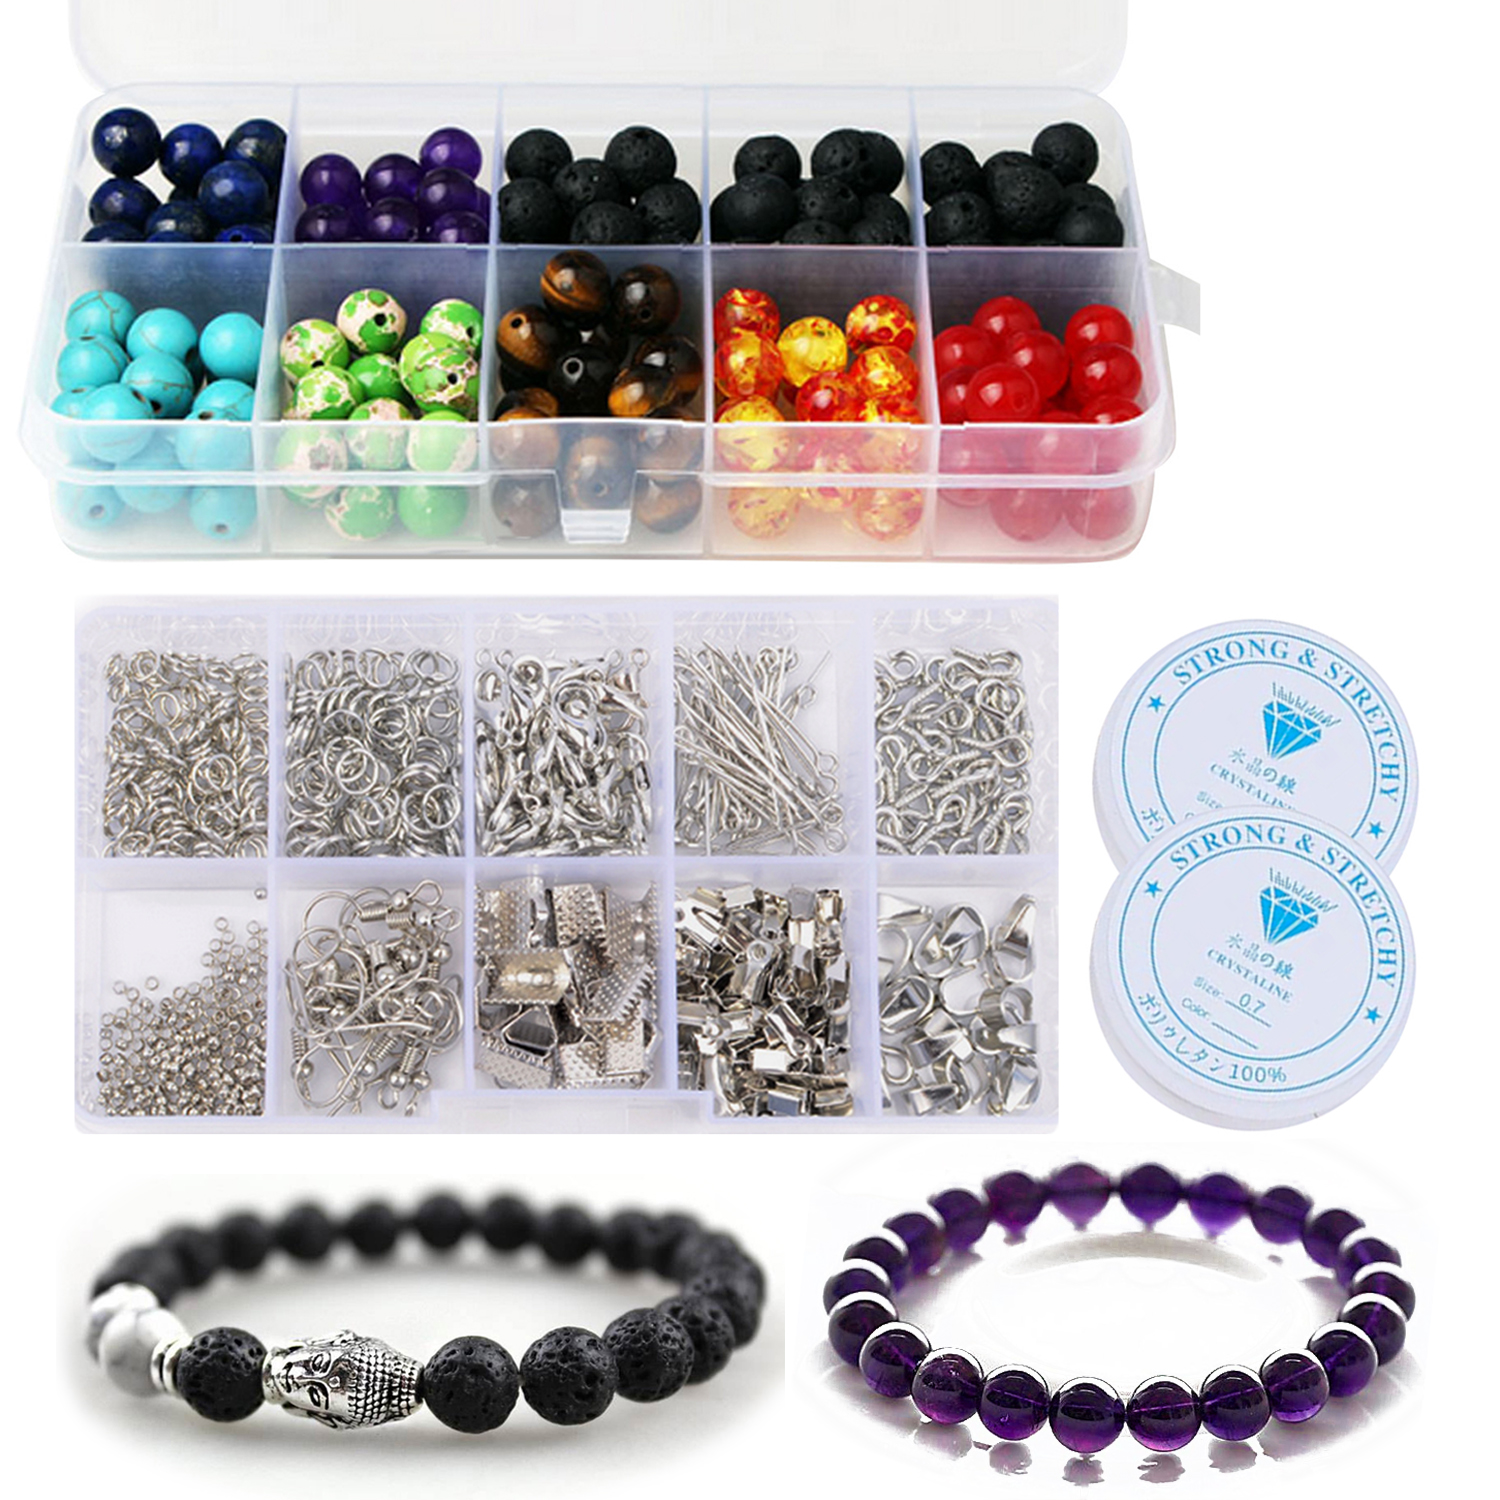 200PCS 8mm DIY Colorful Natural Volcanic Stone Lava Chakra Beads & 2Roll Crystal String & 640PCS DIY Jewelry Making Finding Tool